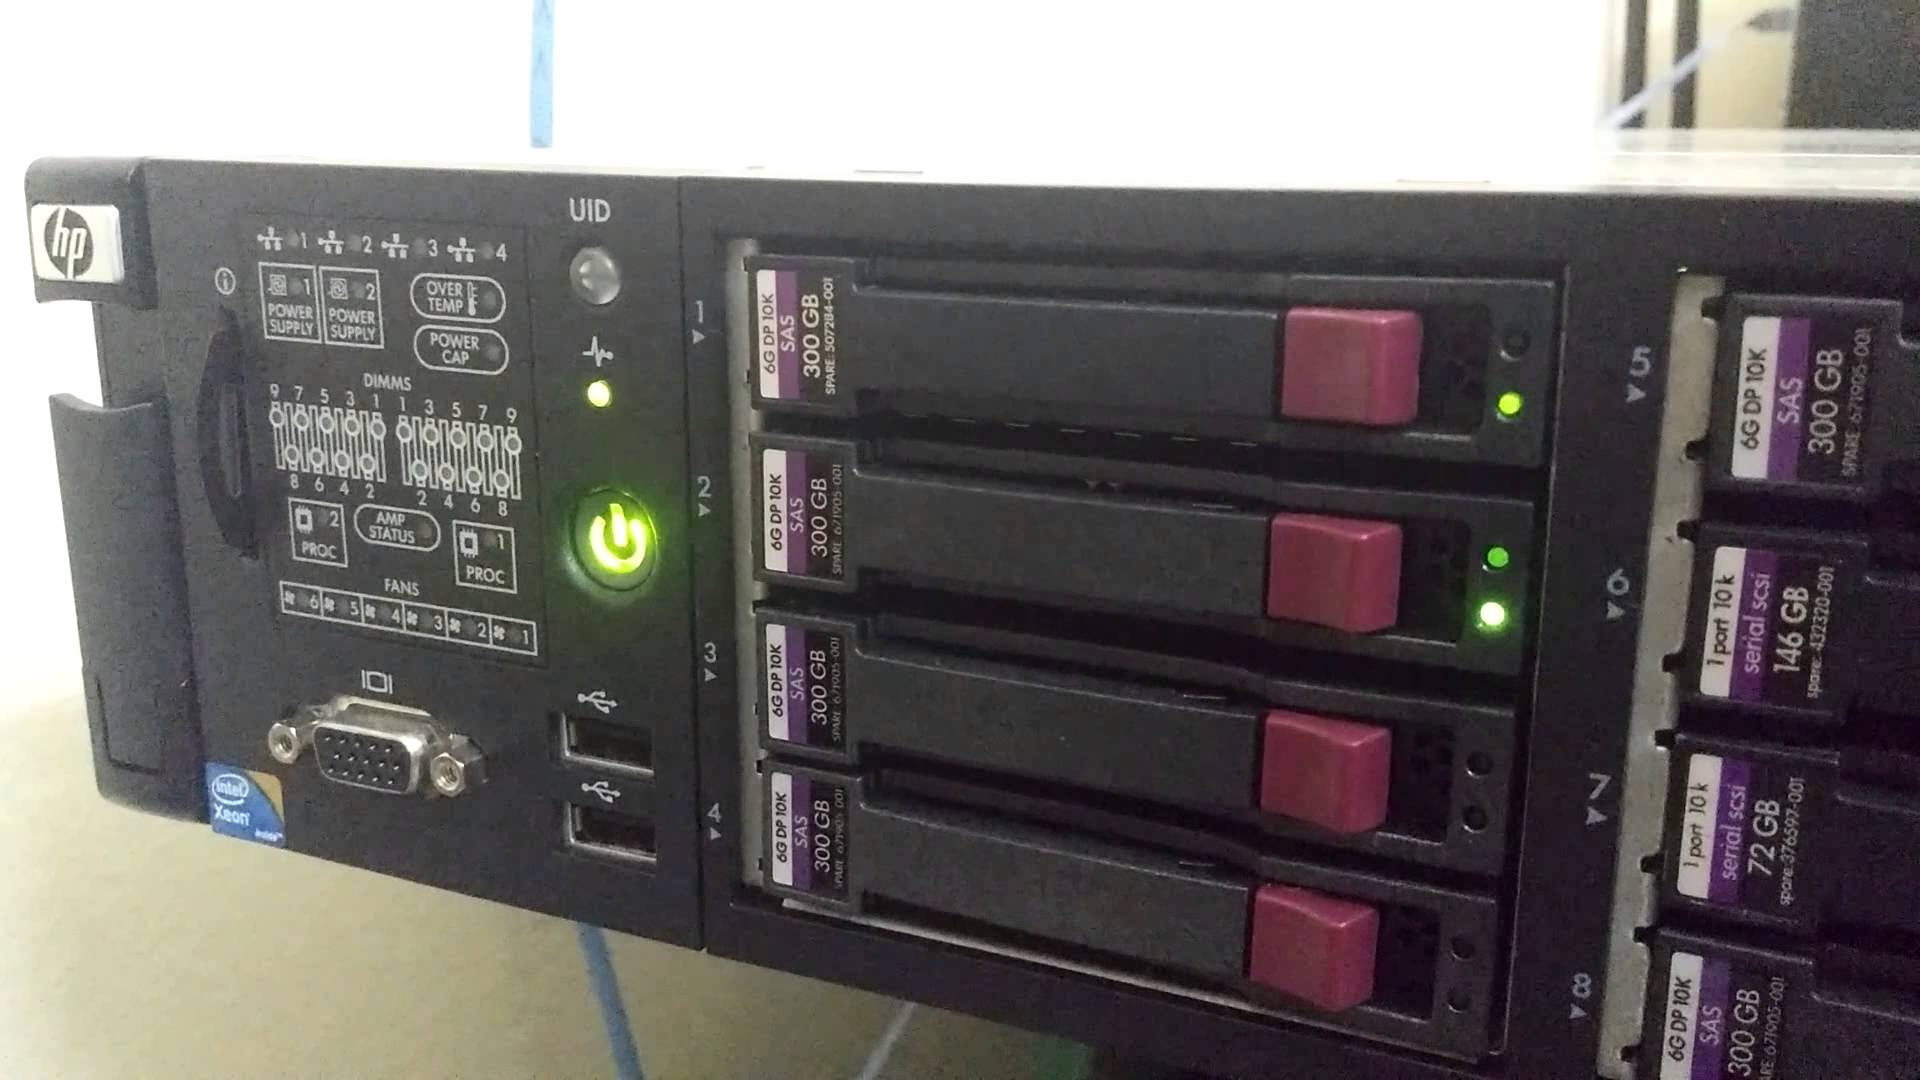 HP DL 380 G7 servers are now in stock.